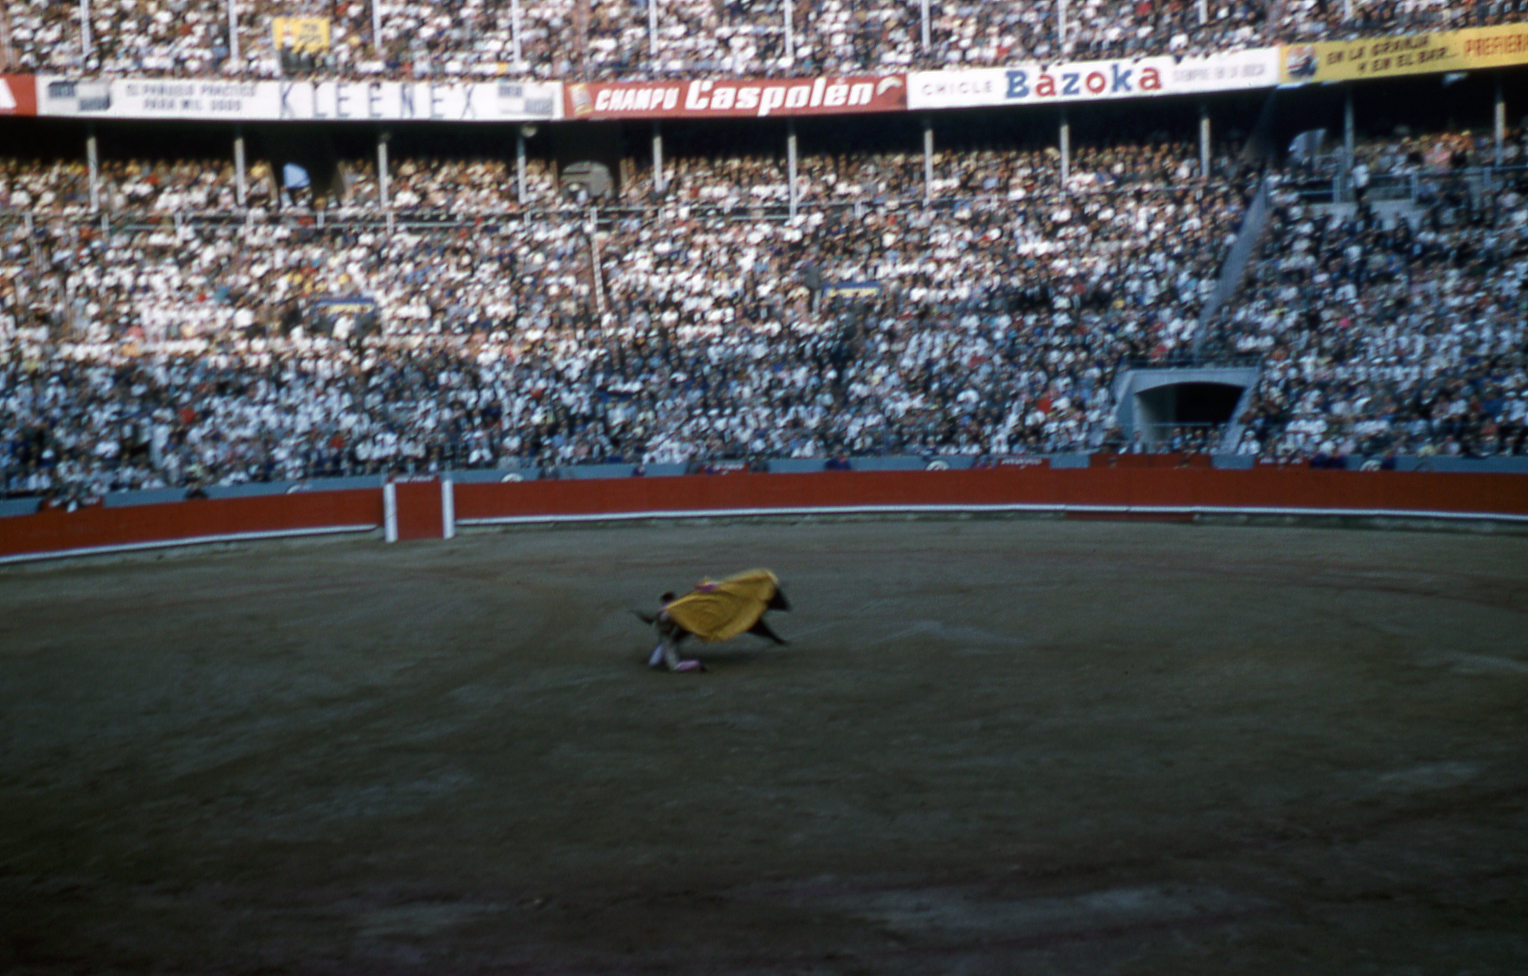 27-jun60-barcelona-bullfights